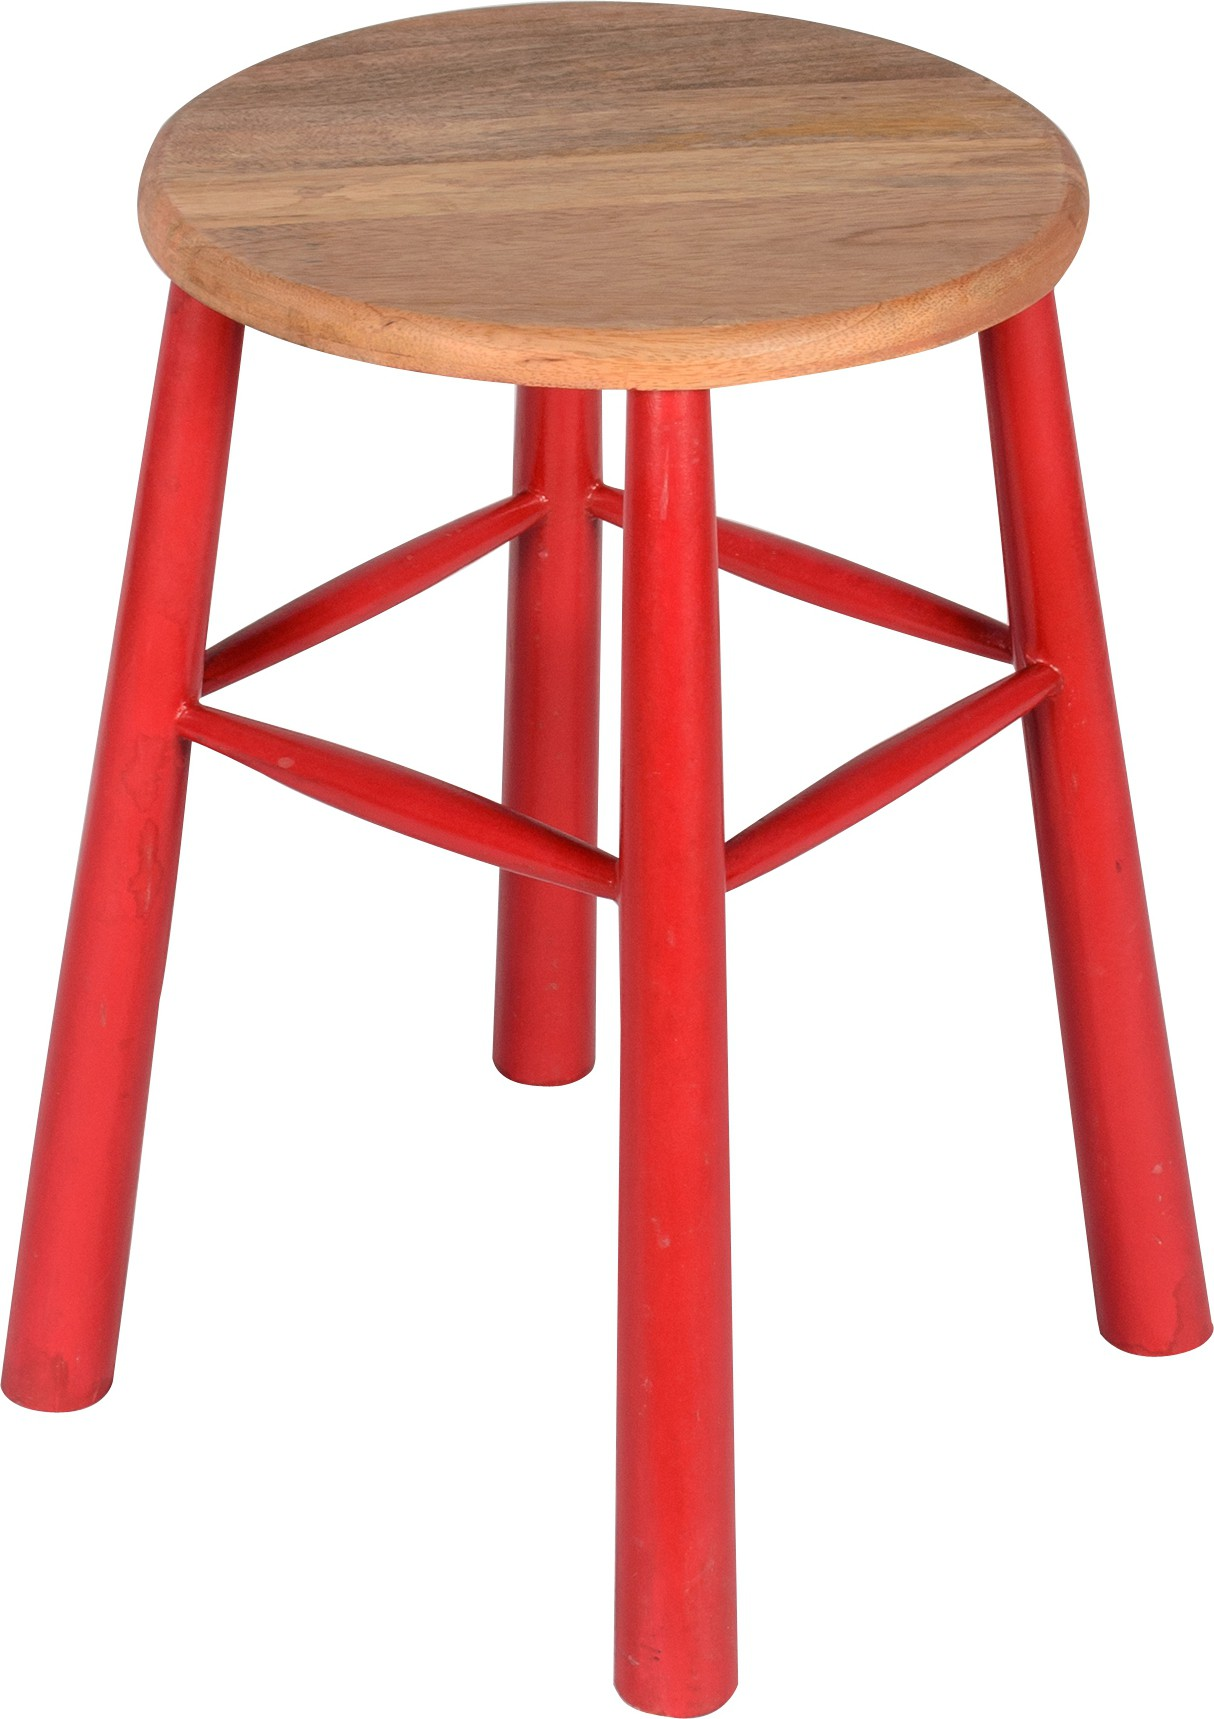 View Hastkala Solid Wood Stool(Finish Color - Red) Furniture (Hastkala)